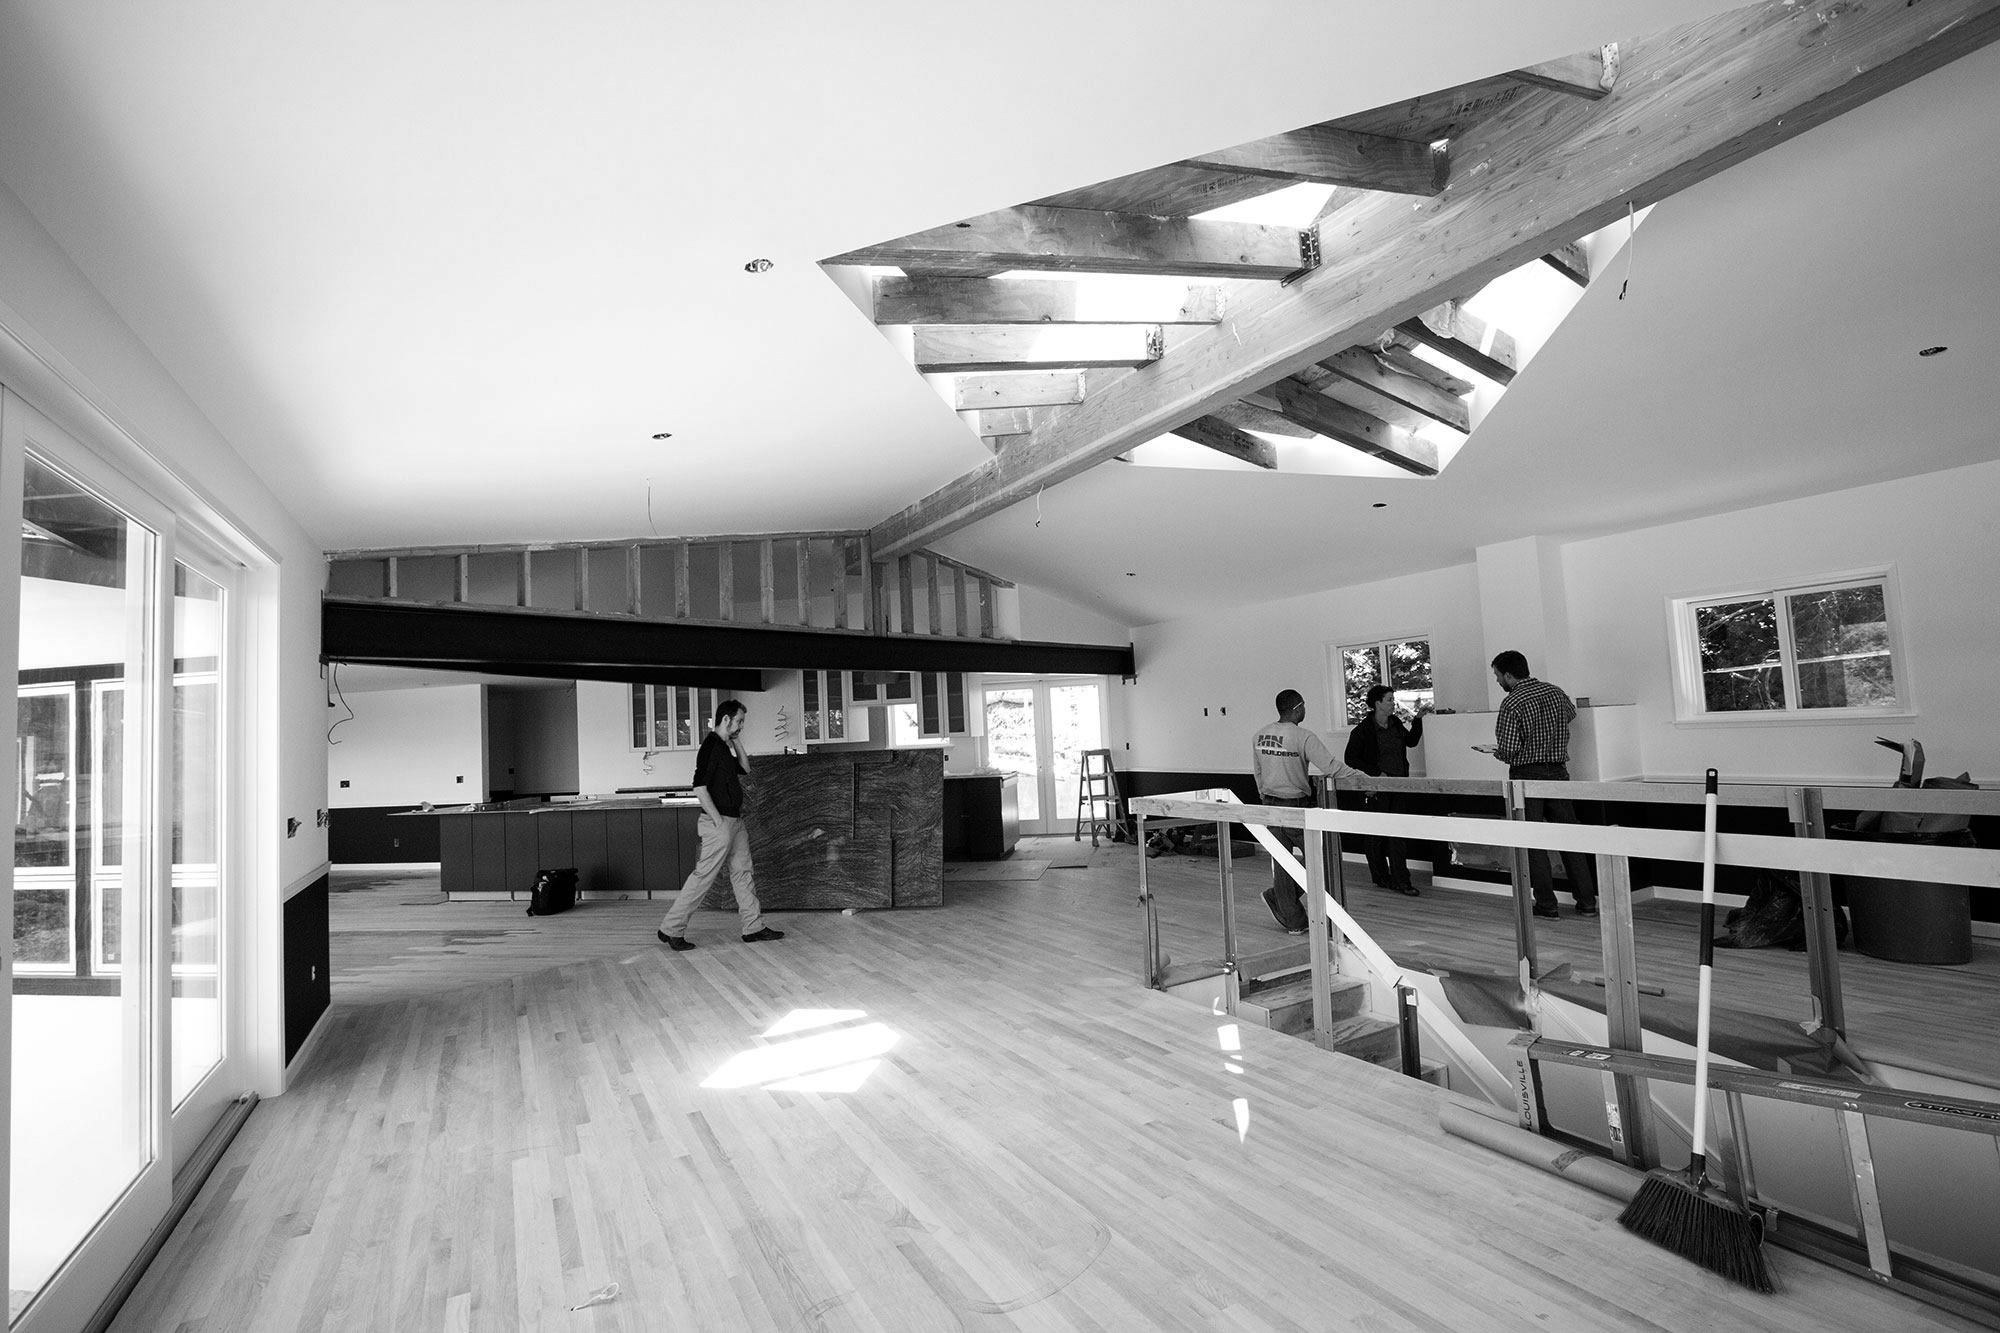 The majority of the construction done, the large open floor plan needs strong structural beams in the ceiling. Again we have kept these exposed. A wooden beam in the dining area and a large steel beam across the kitchen entrance.